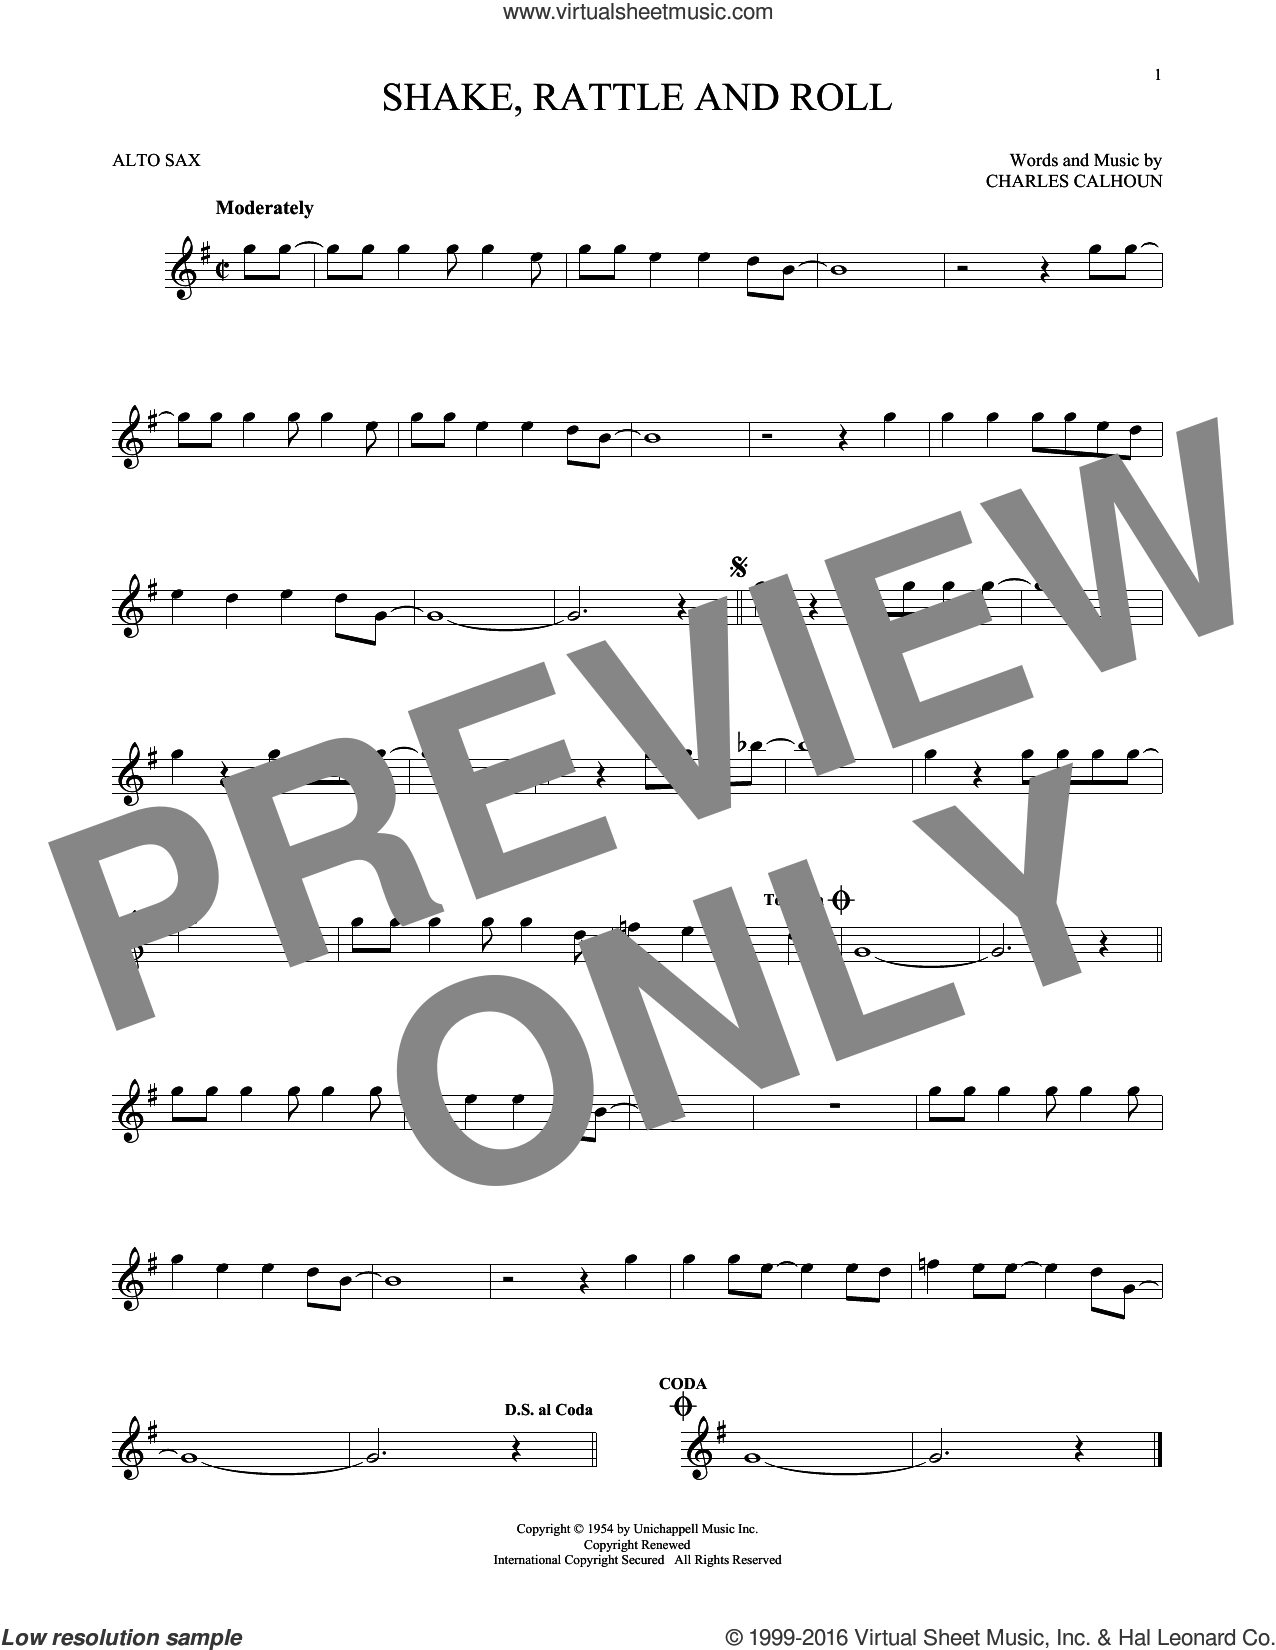 Shake, Rattle And Roll sheet music for alto saxophone solo by Charles Calhoun, Arthur Conley and Bill Haley & His Comets. Score Image Preview.